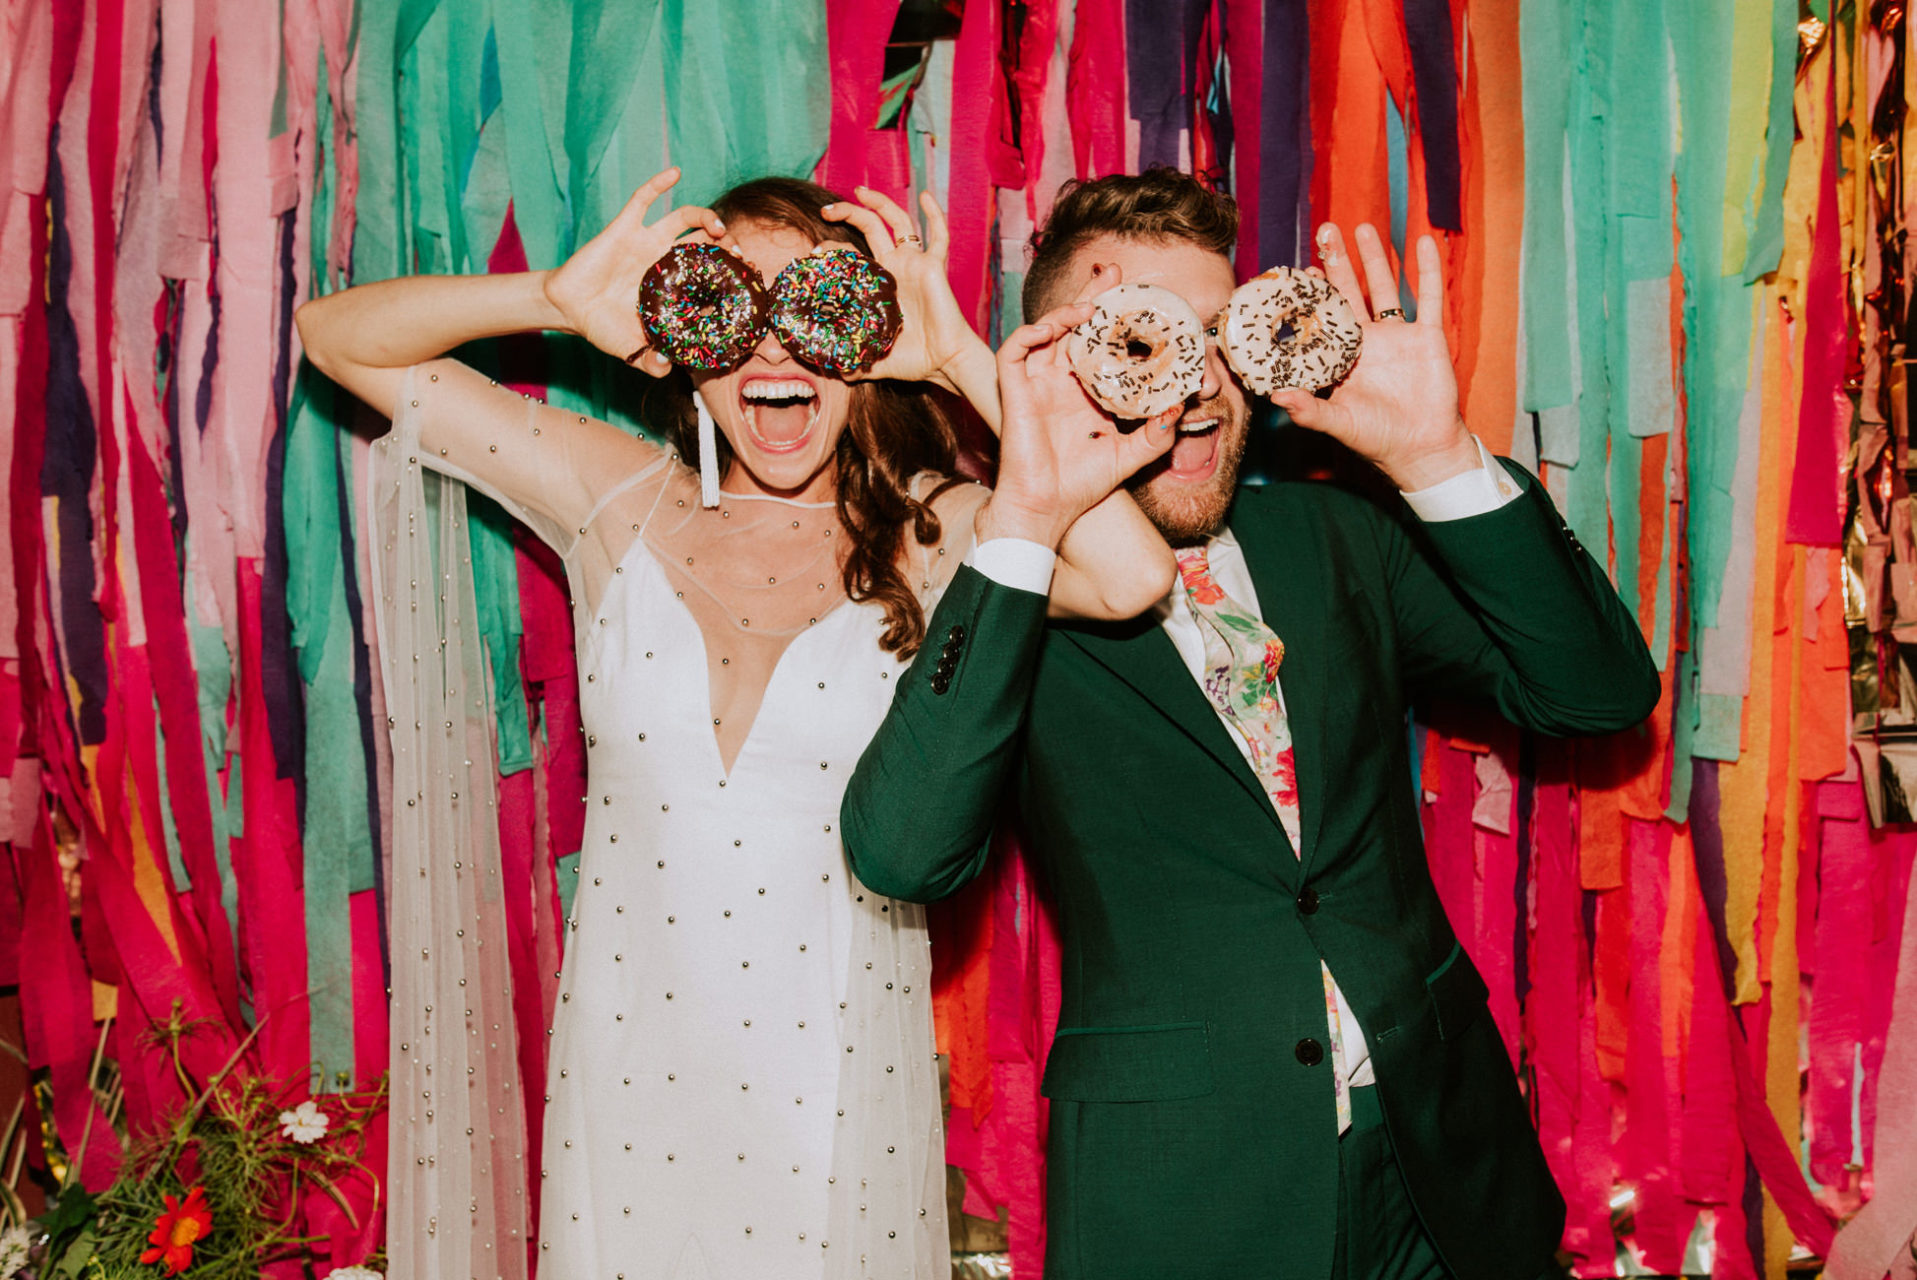 best-top-los-angeles-destination-wedding-photographer-hipster-modern-quirky-editorial-romantic-epic-14-fun-bright-colorful-nyc